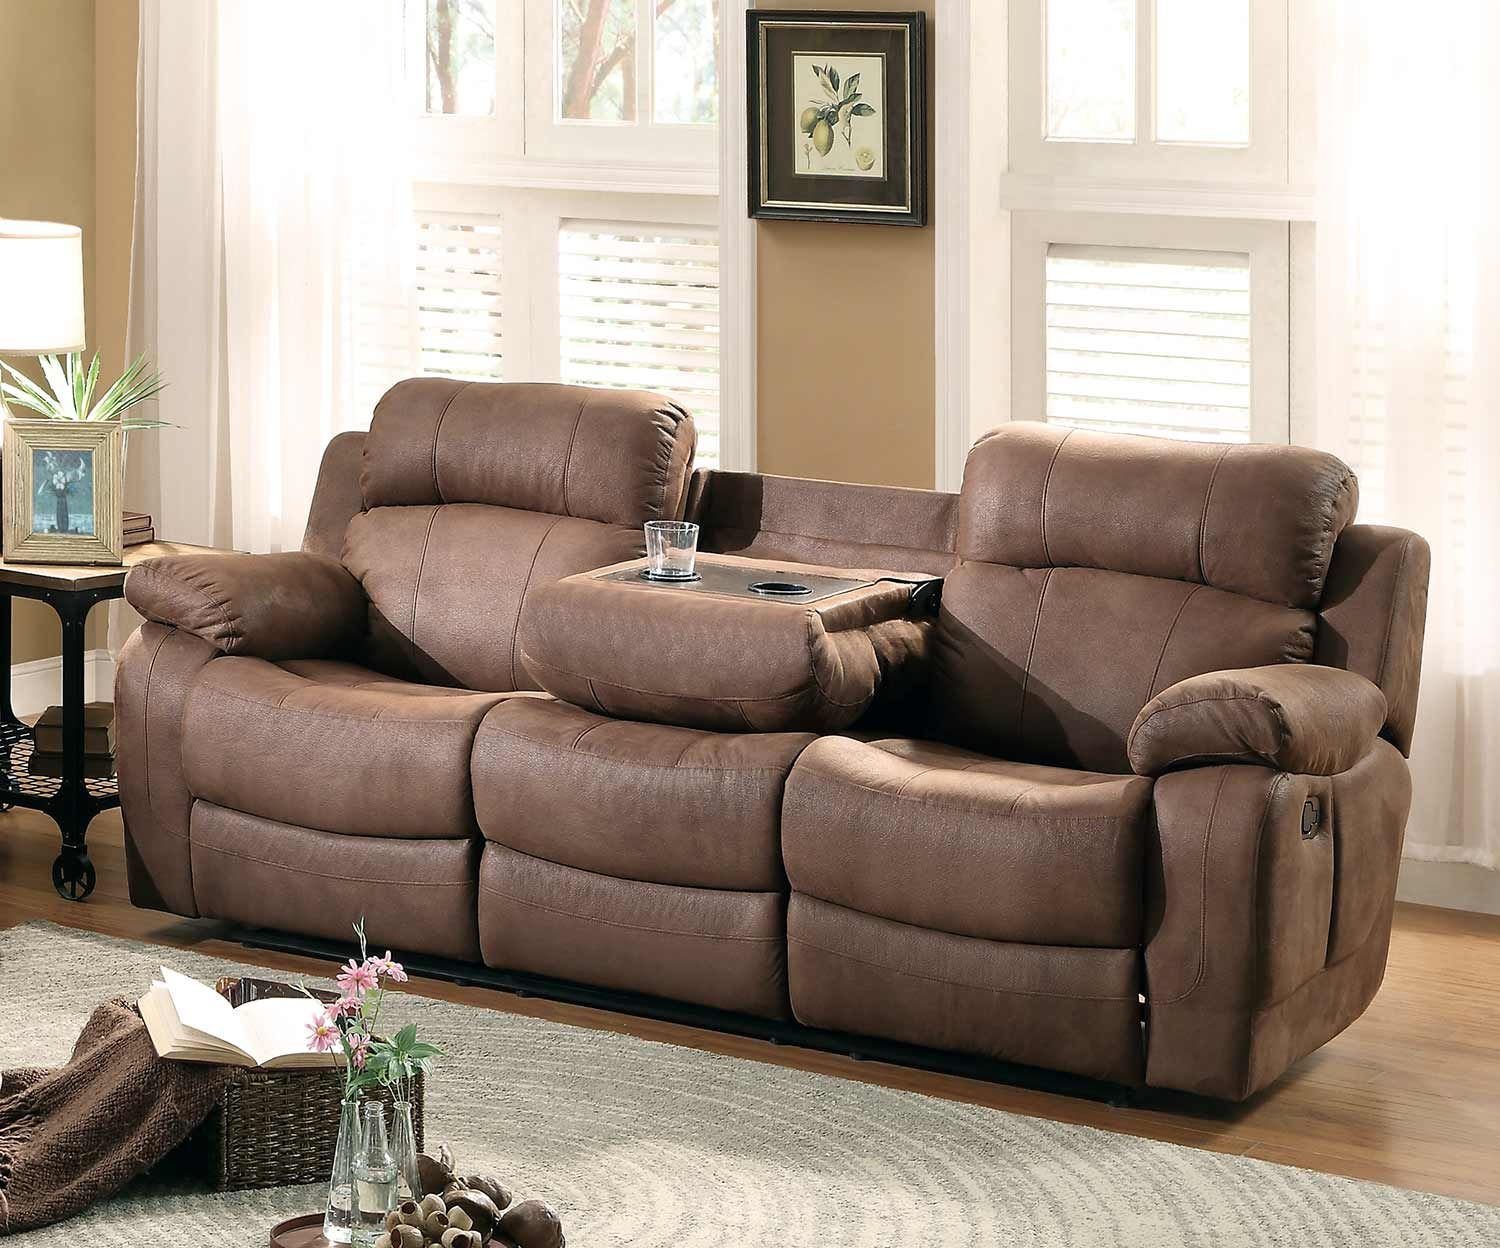 Homelegance Marille Double Reclining Sofa With Center Drop-Down Cup Holders  - Dark Brown 9724DBR